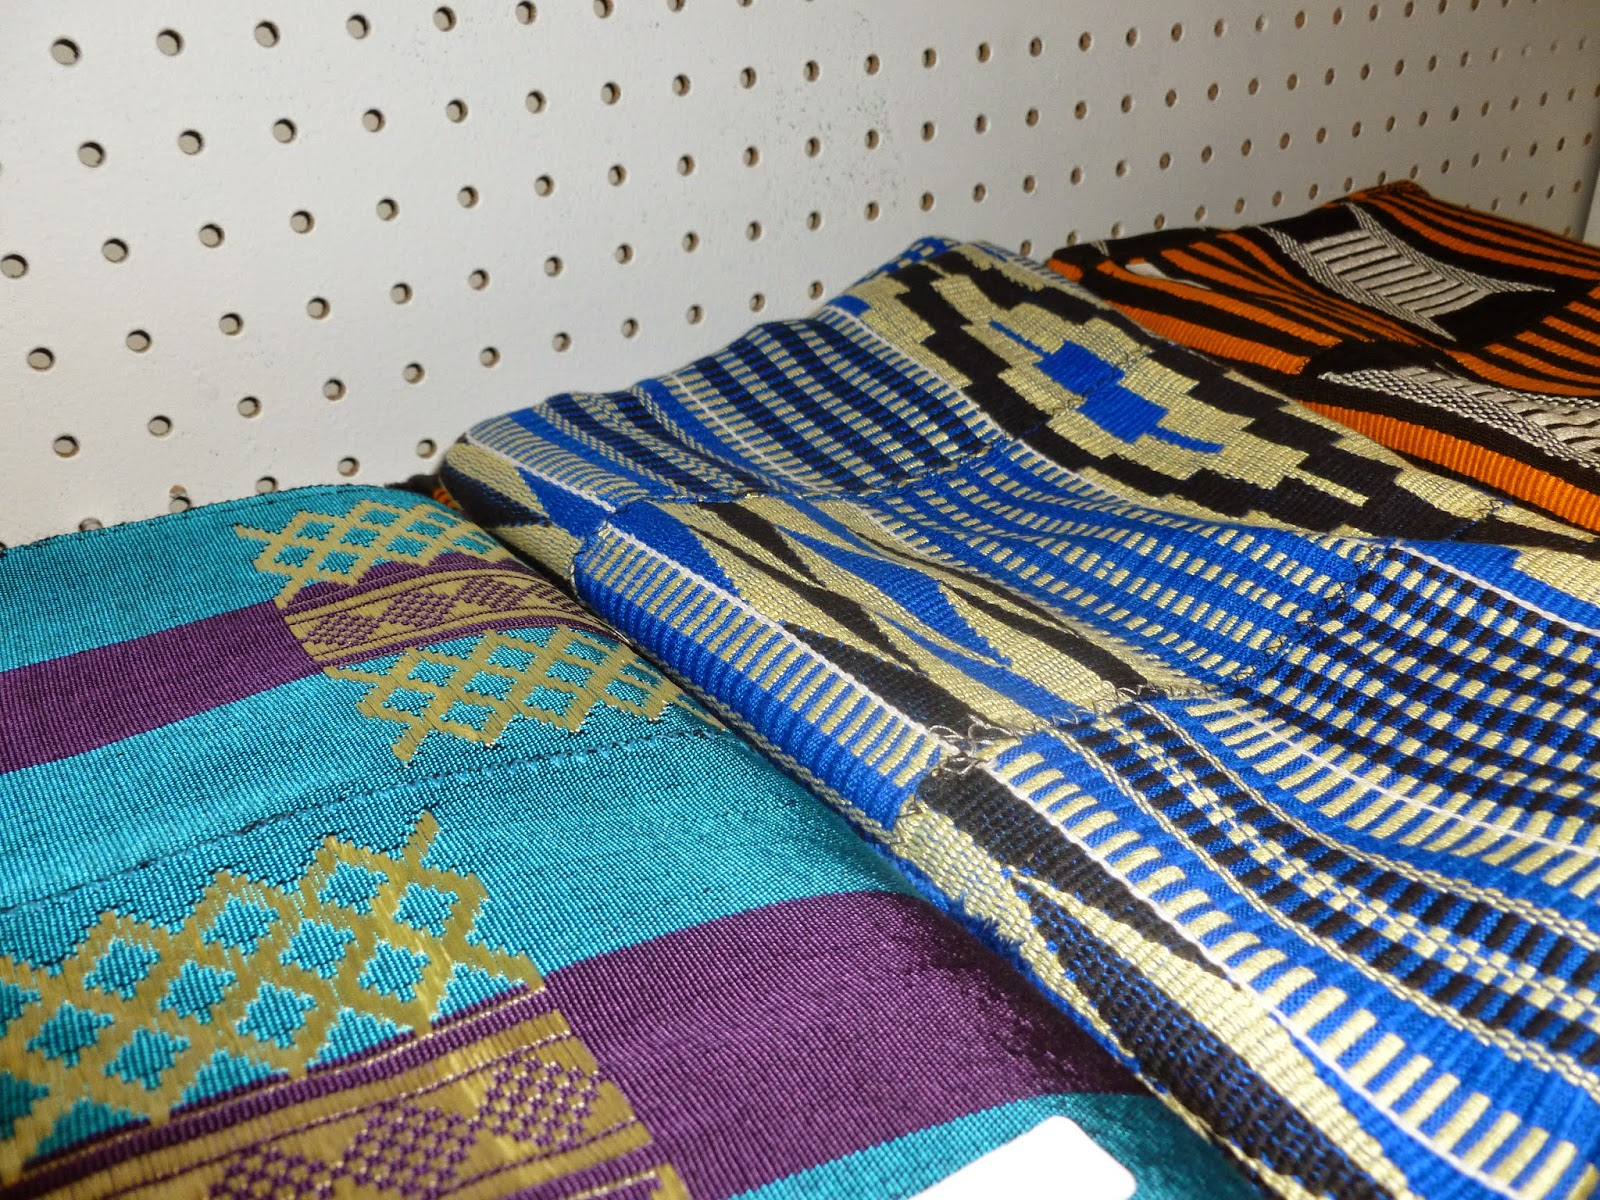 Anitavee's Home Decor & More: African Home Decor And